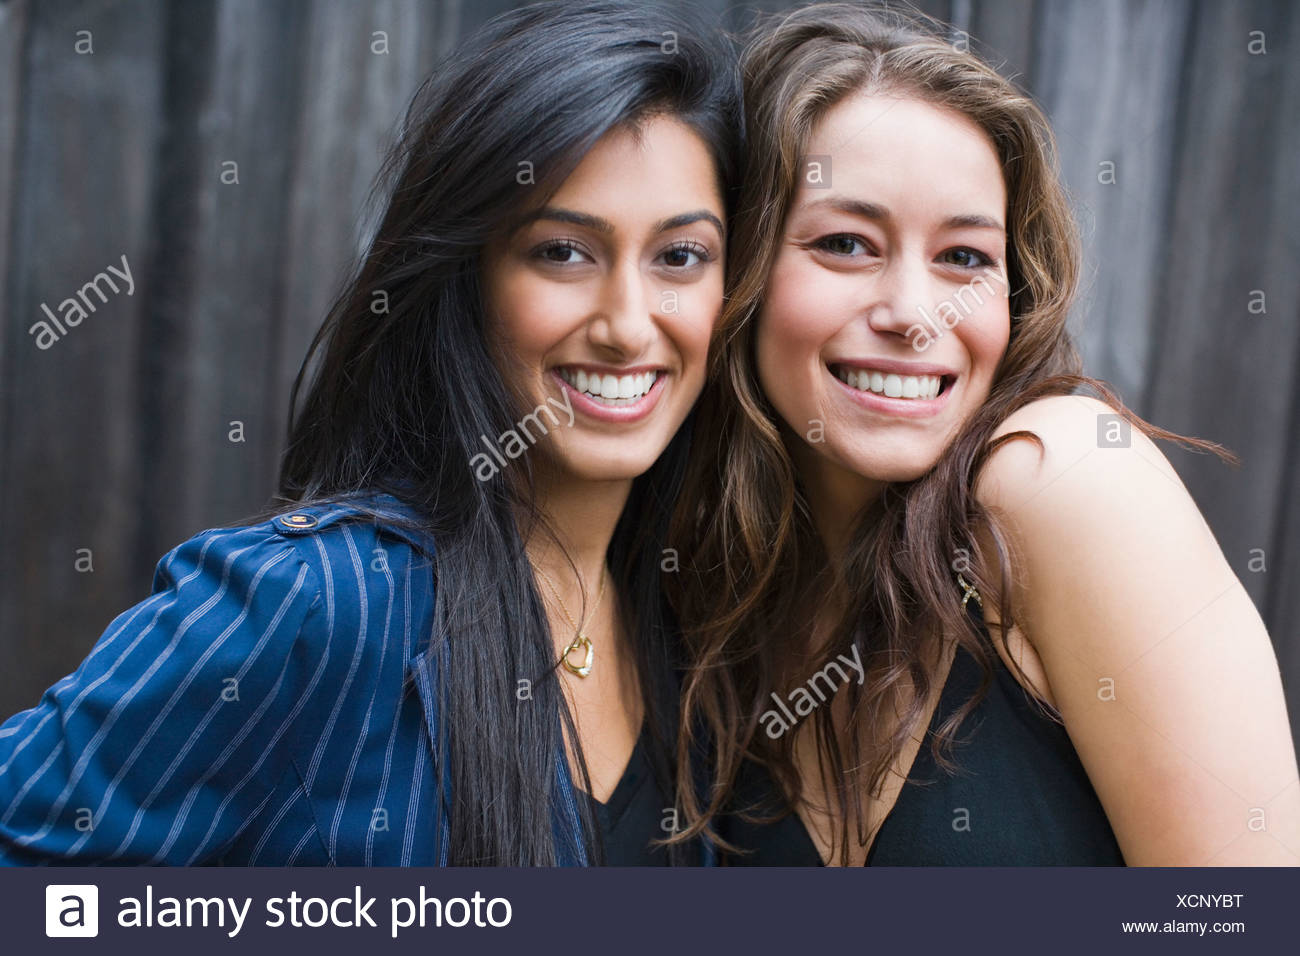 Portrait of two women smiling - Stock Image